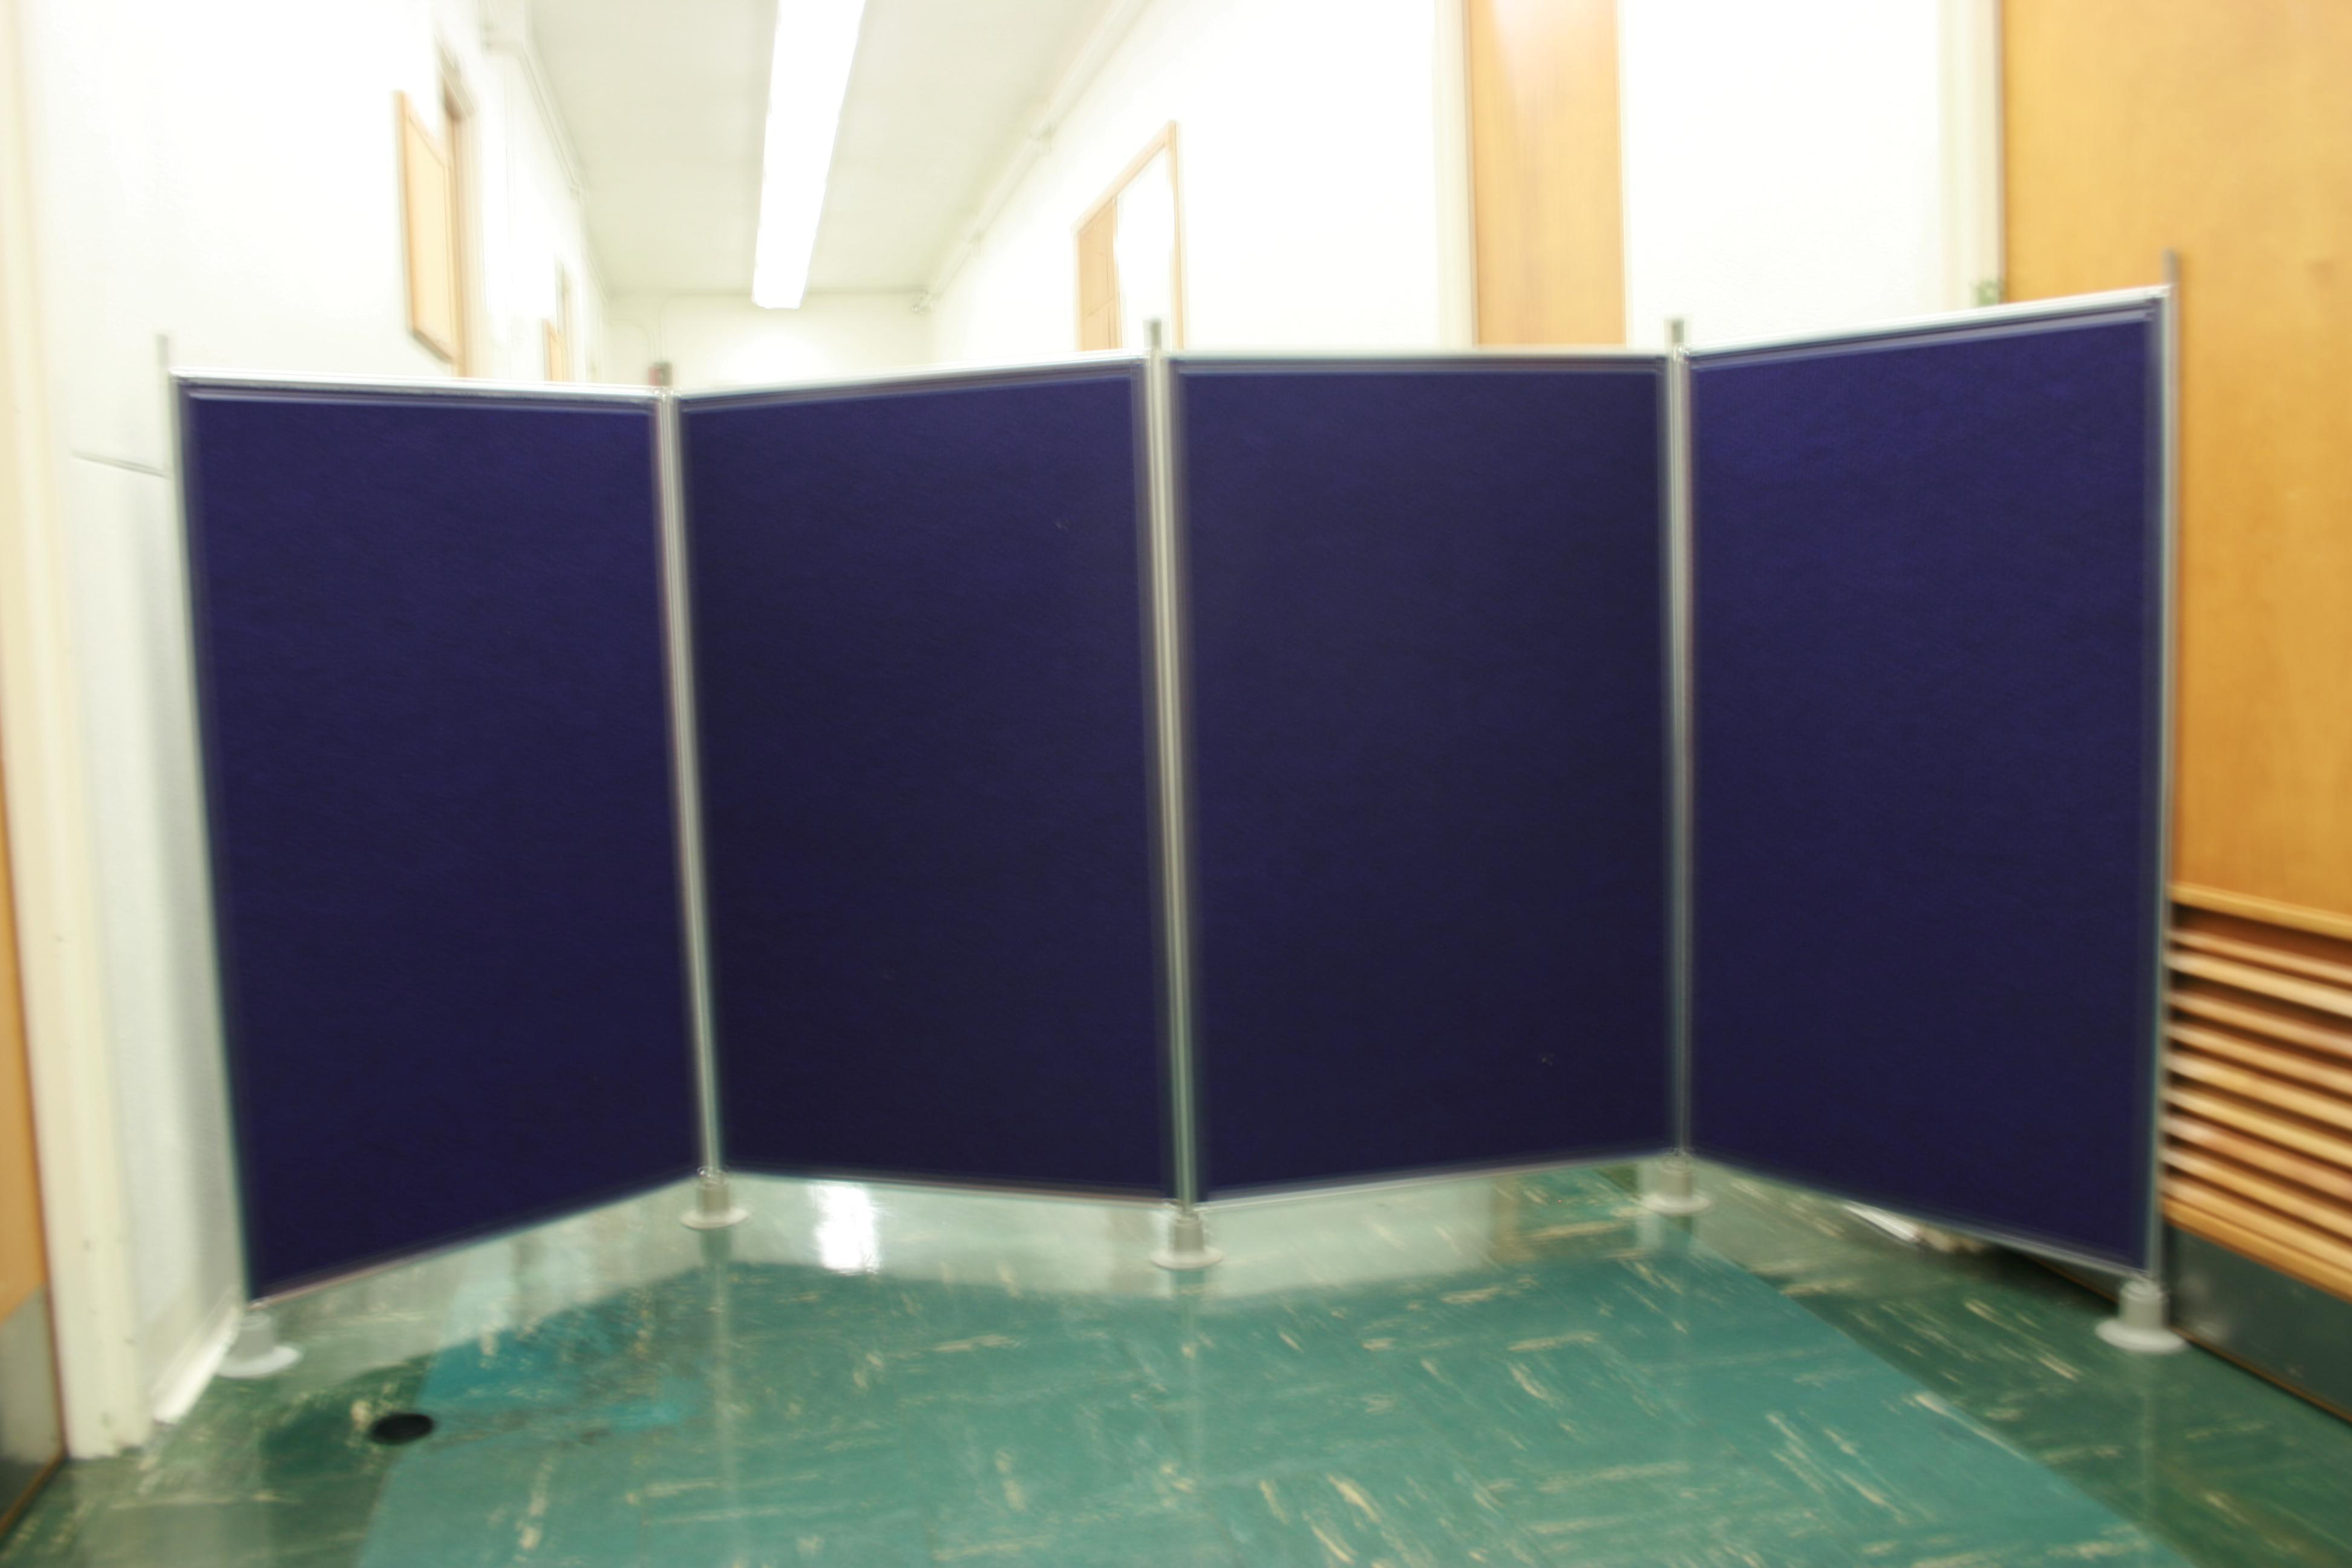 Full view of plain 4 pannel display